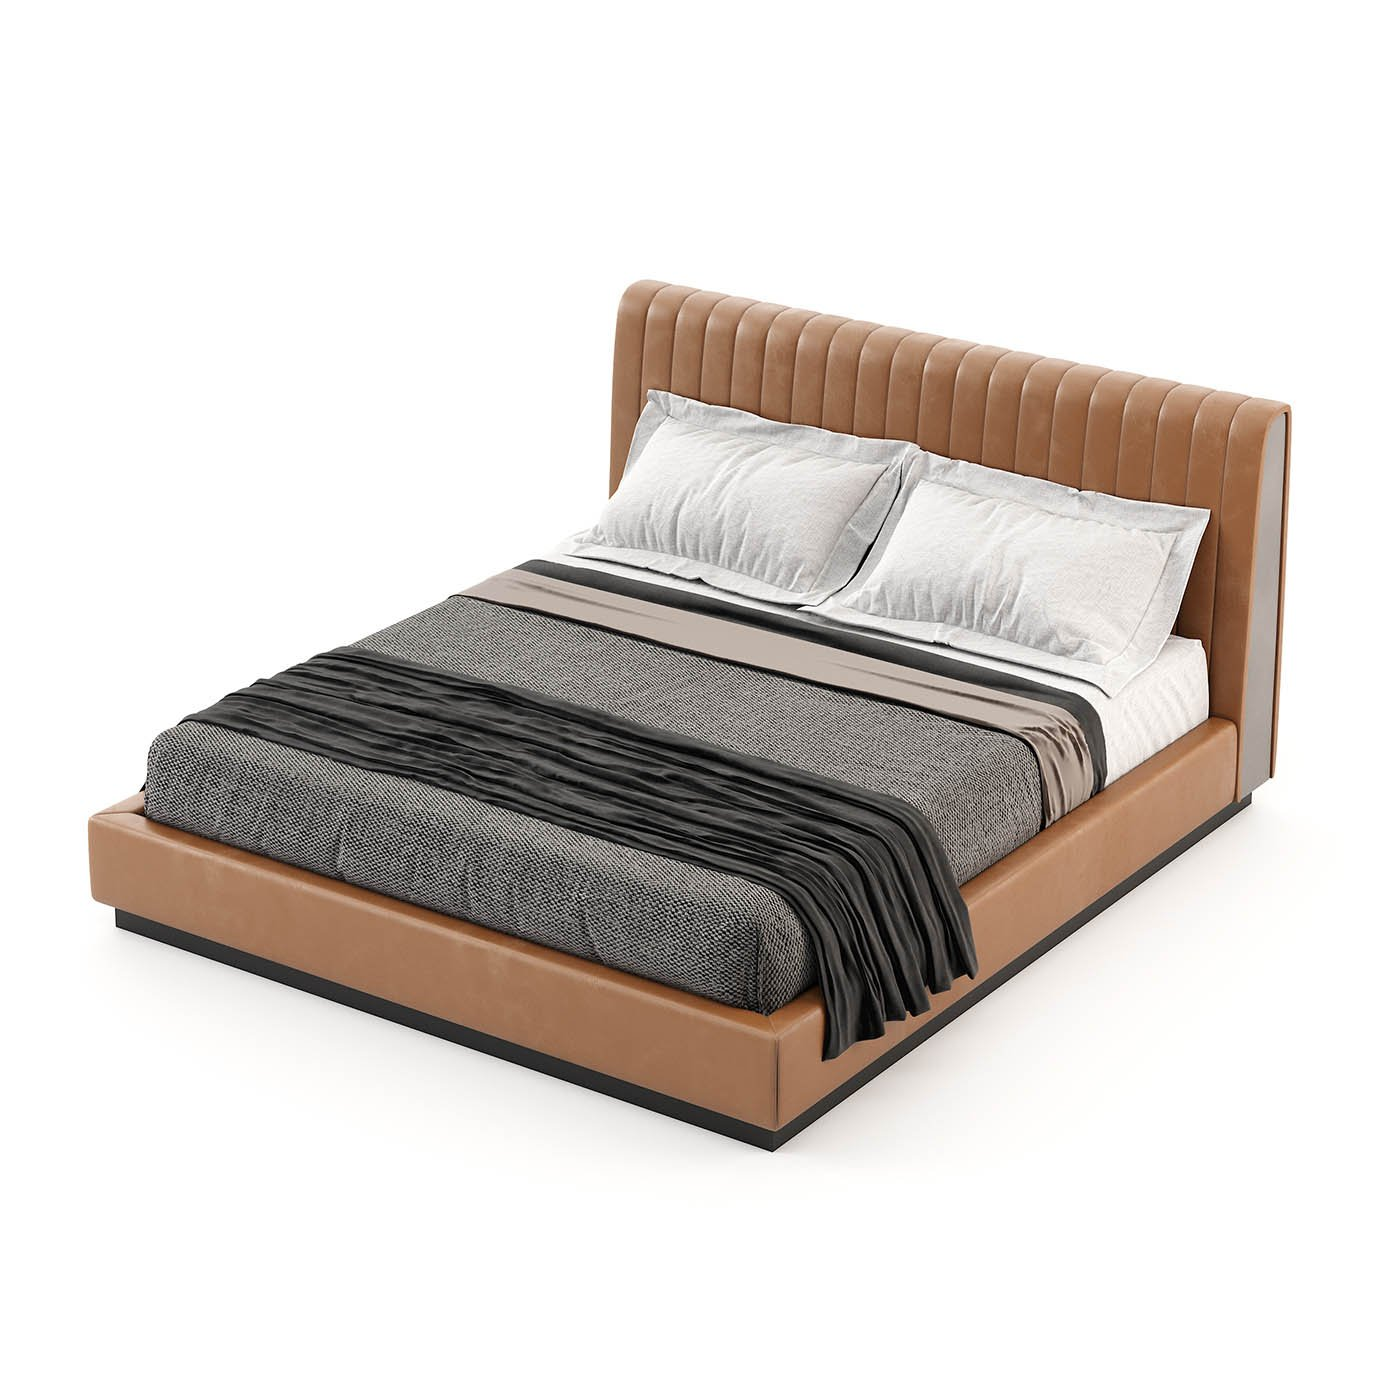 Harry Bed